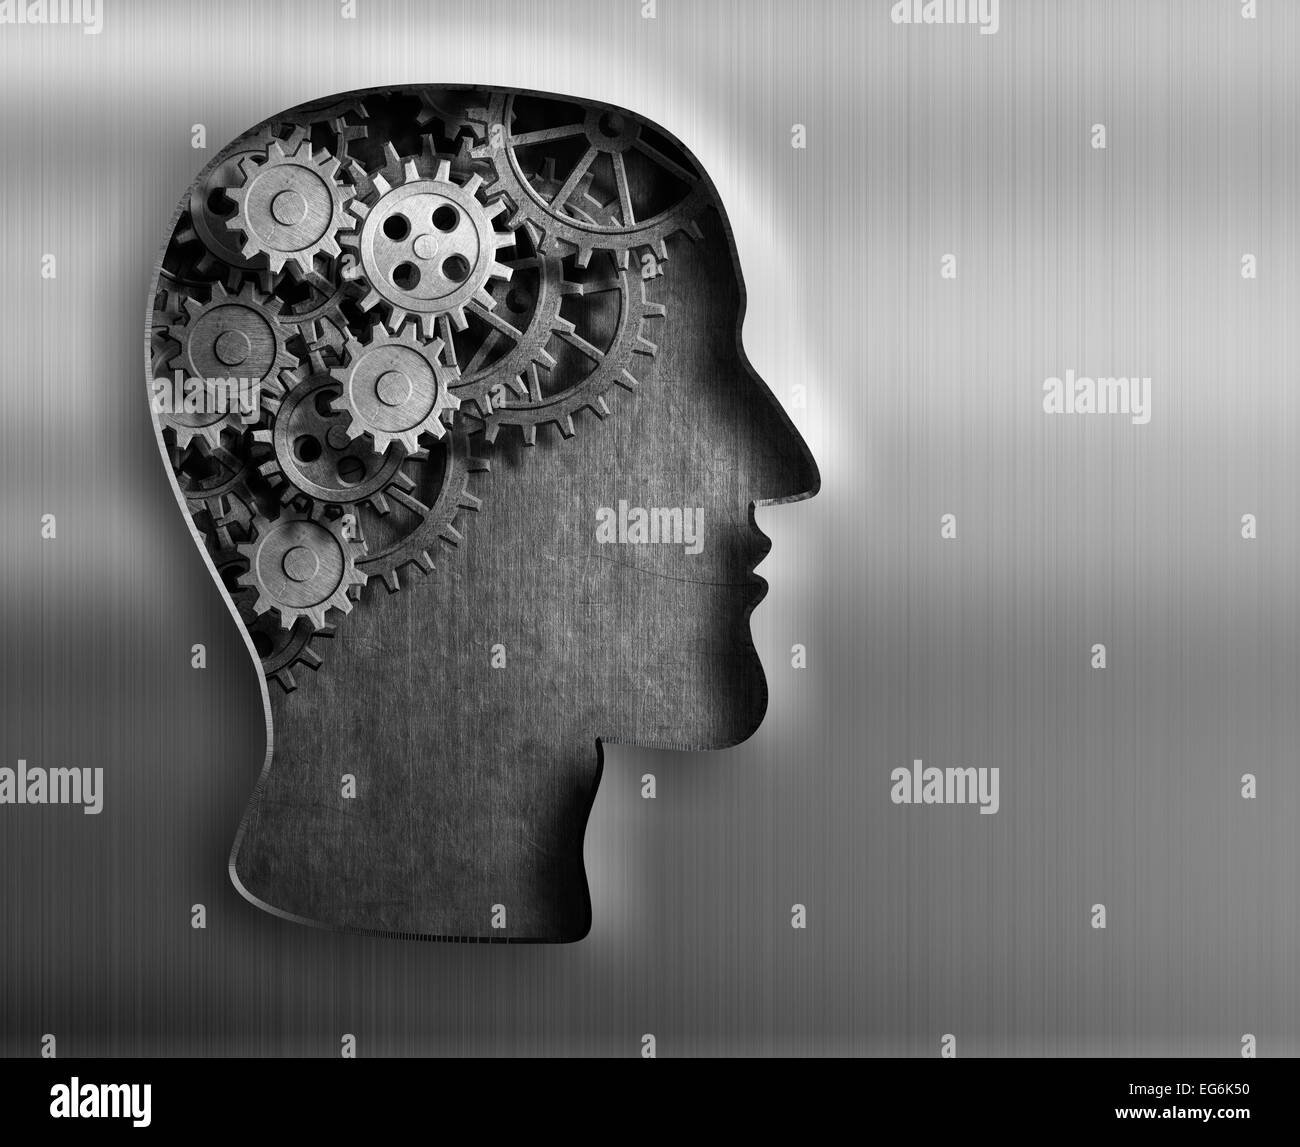 Brain model from gears and cogs in metal plate. - Stock Image